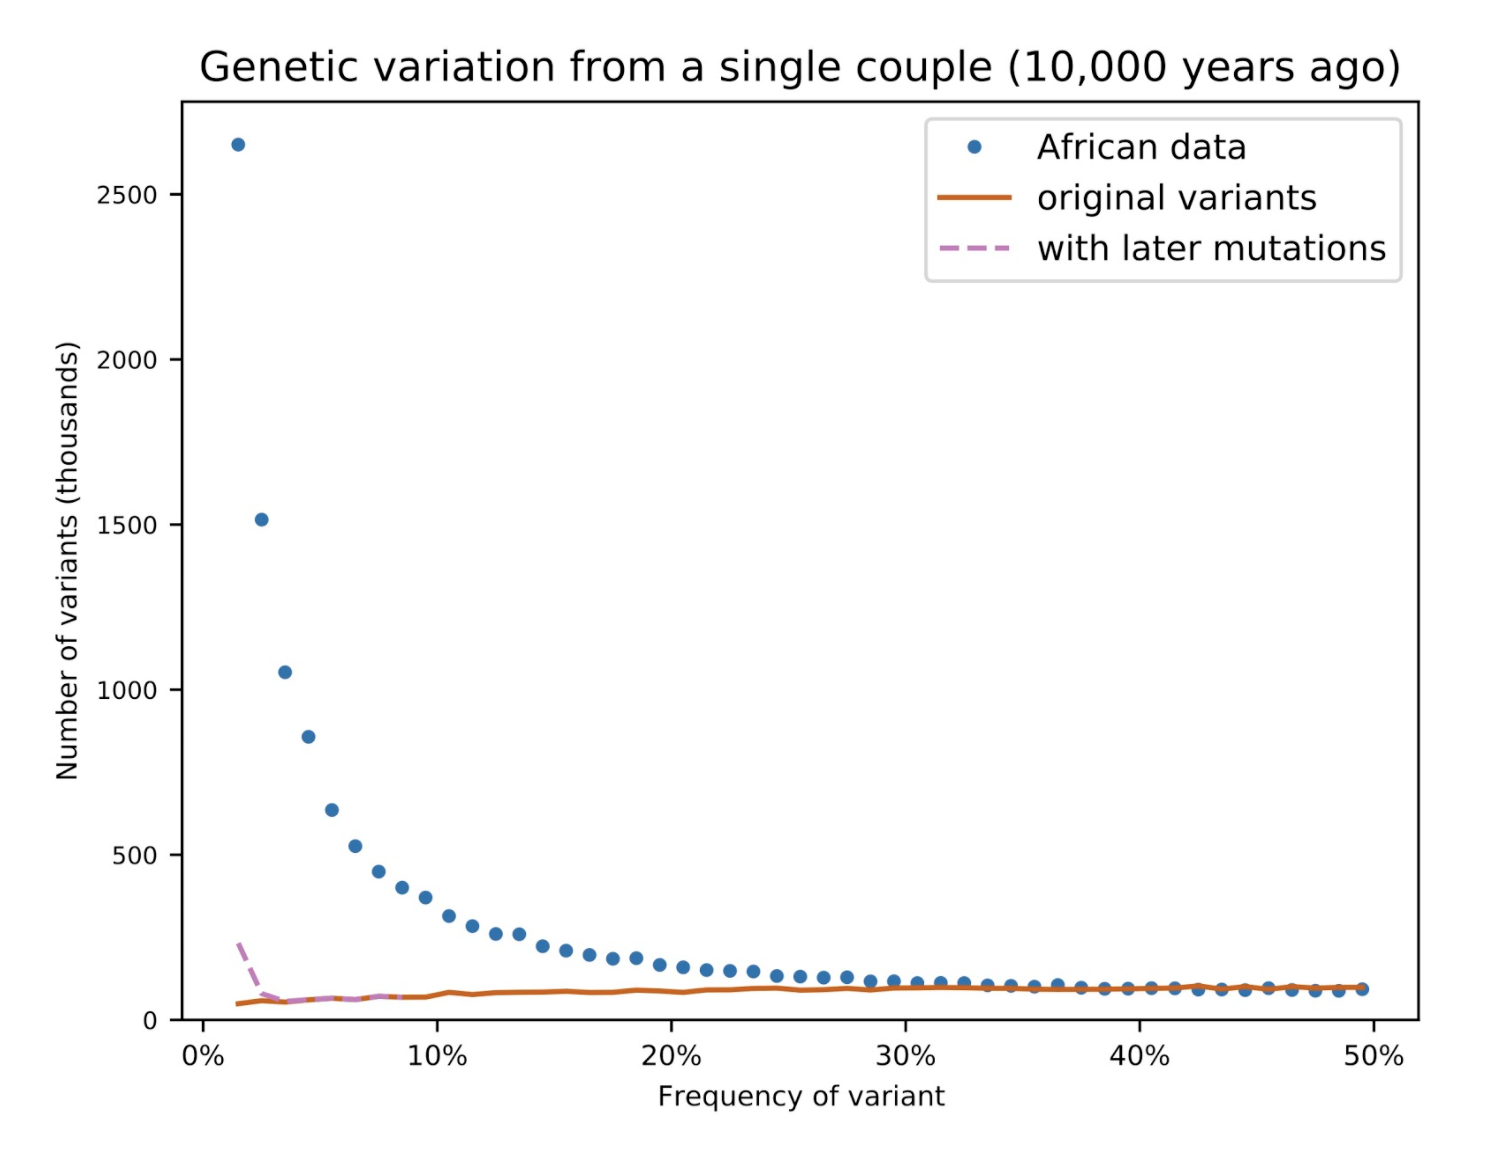 Graph: Genetic variation from a single couple (10,000 years ago)